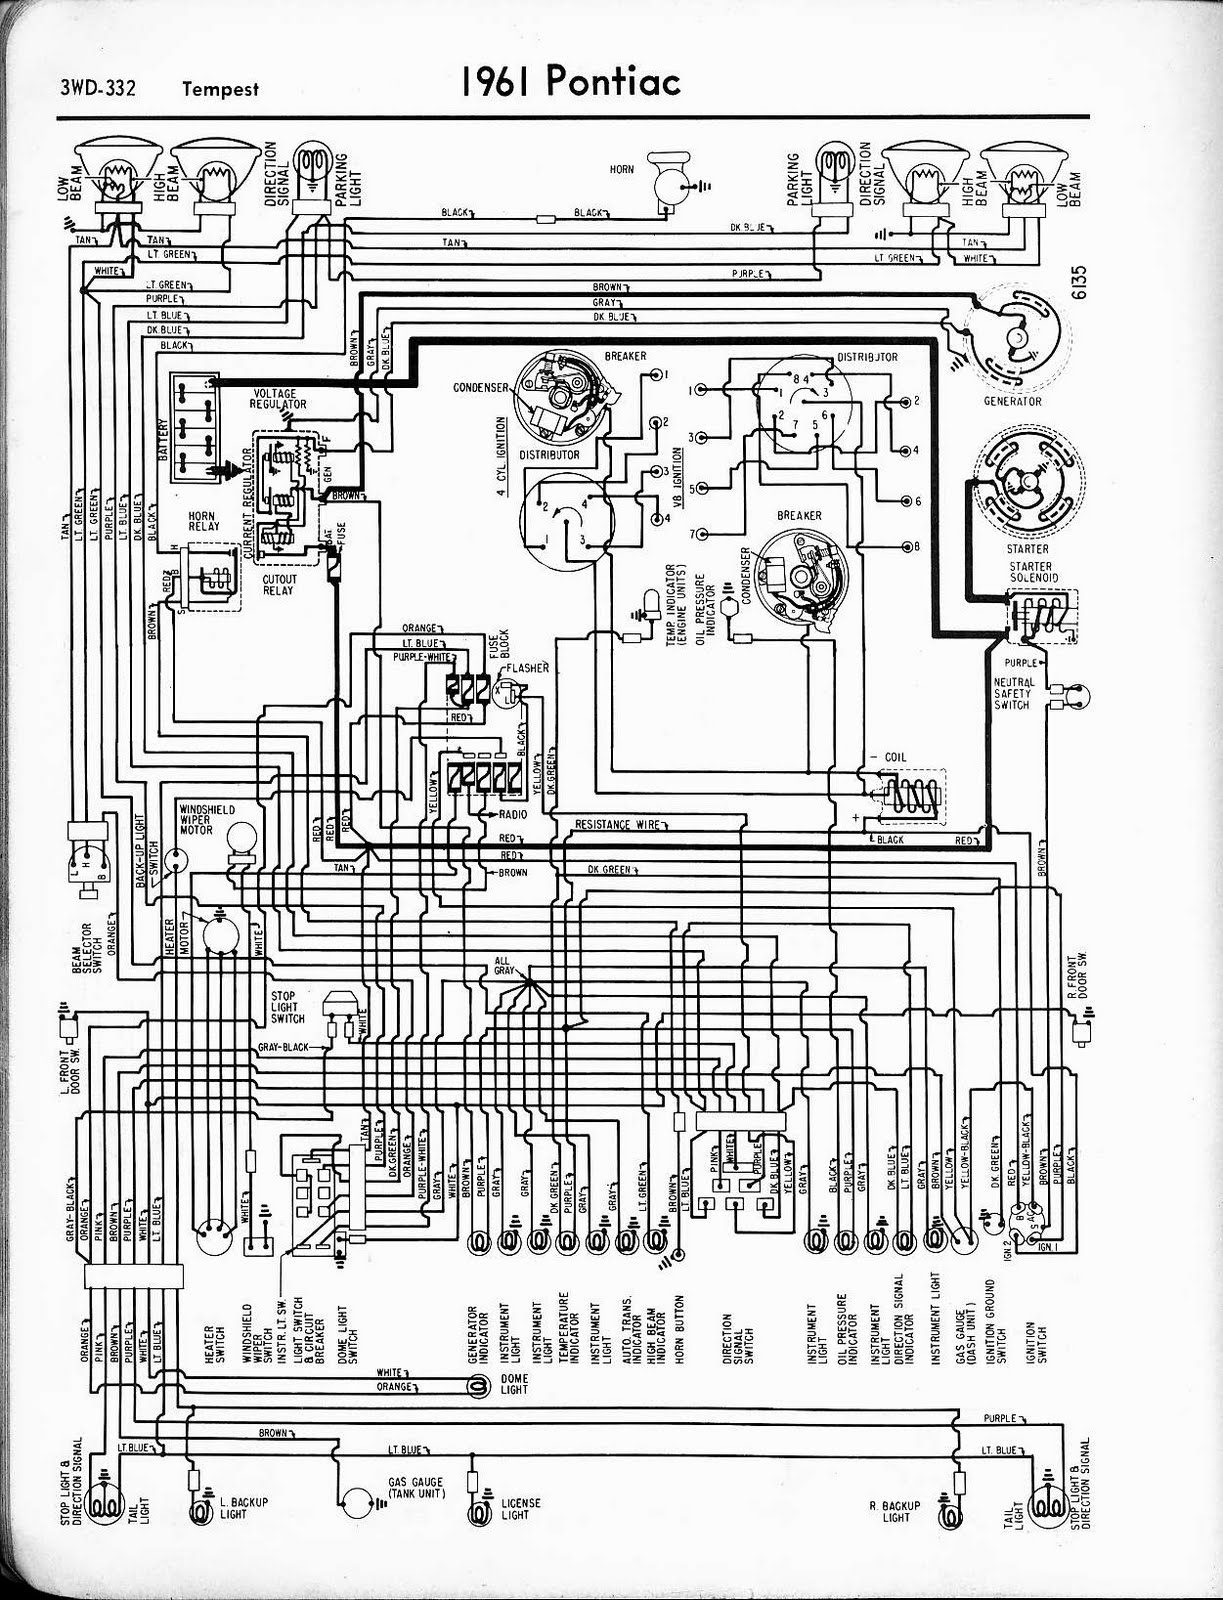 1969 chevelle tach wiring diagram  1969  free engine image